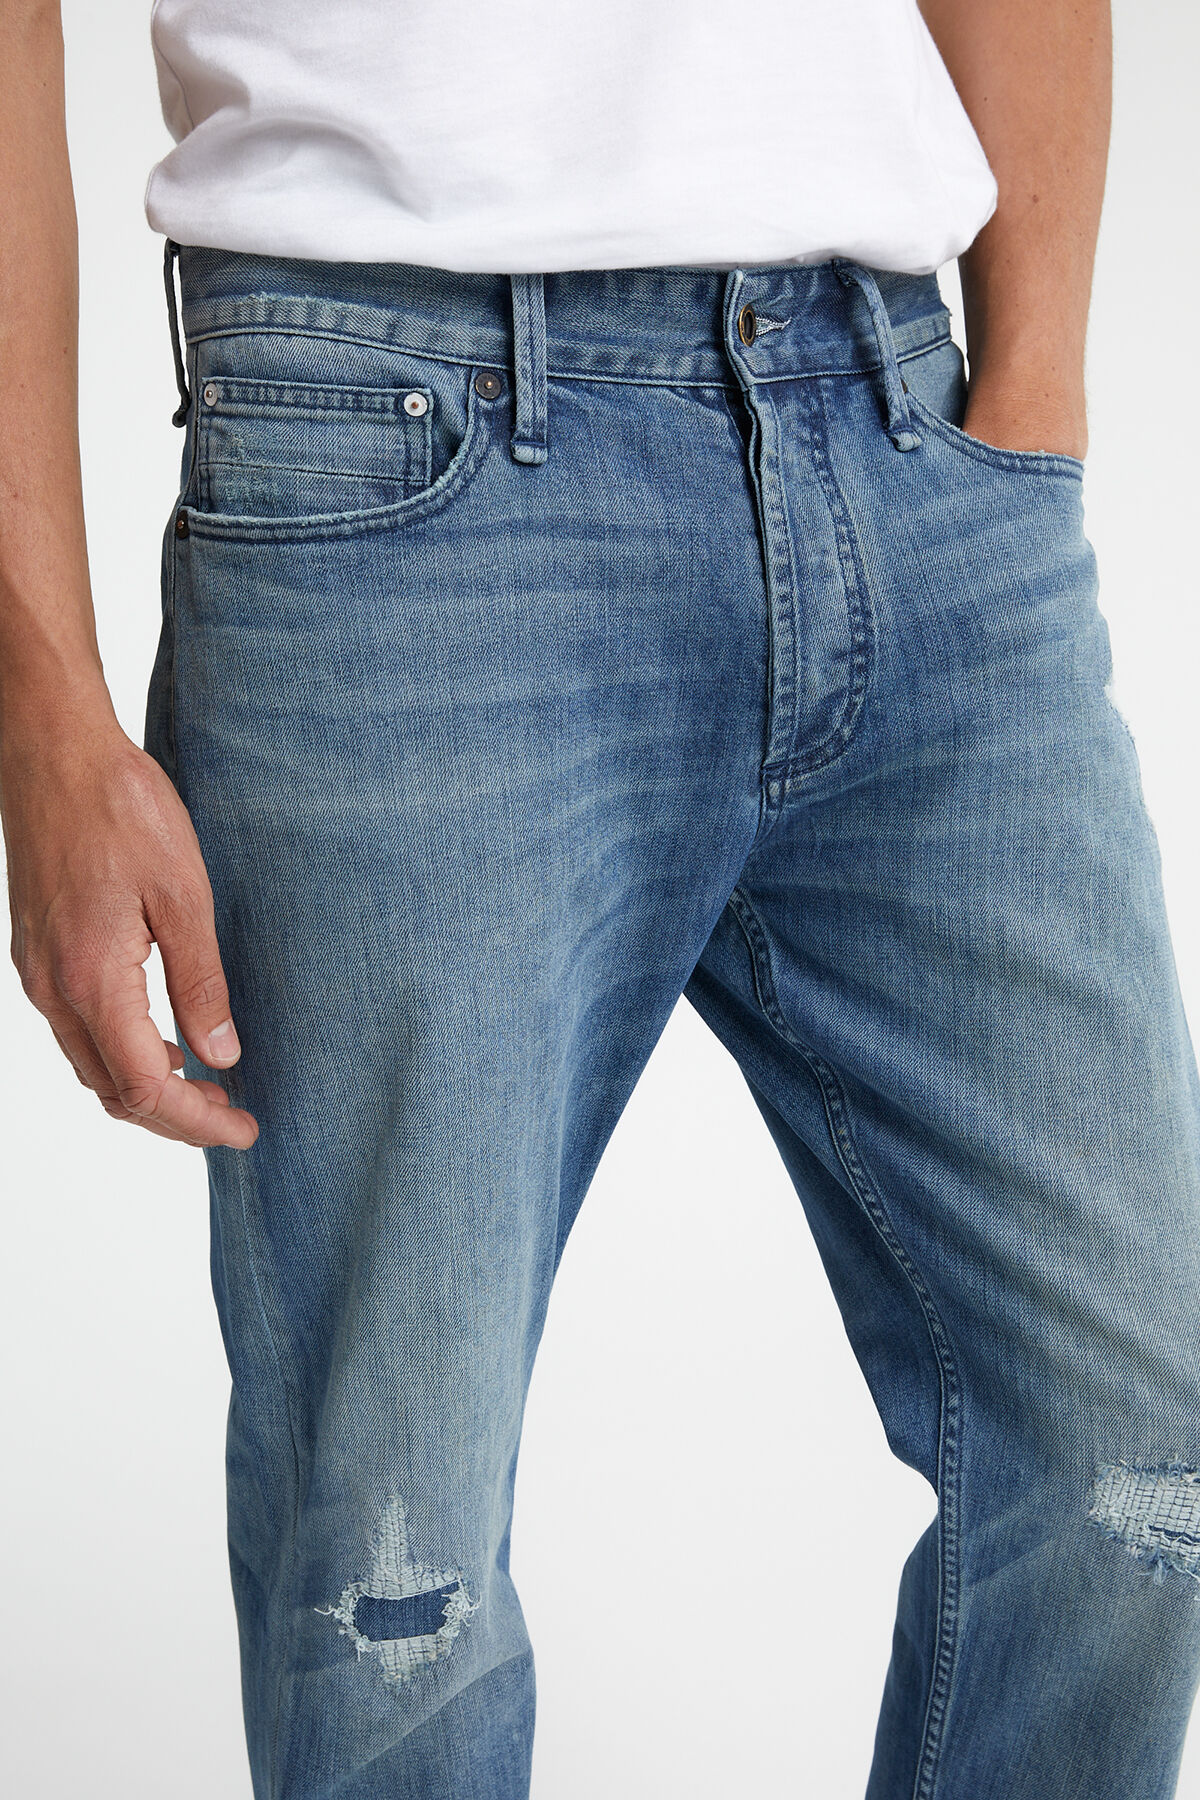 CROP Recycled Denim - DROPPED-CROTCH, STRAIGHT FIT